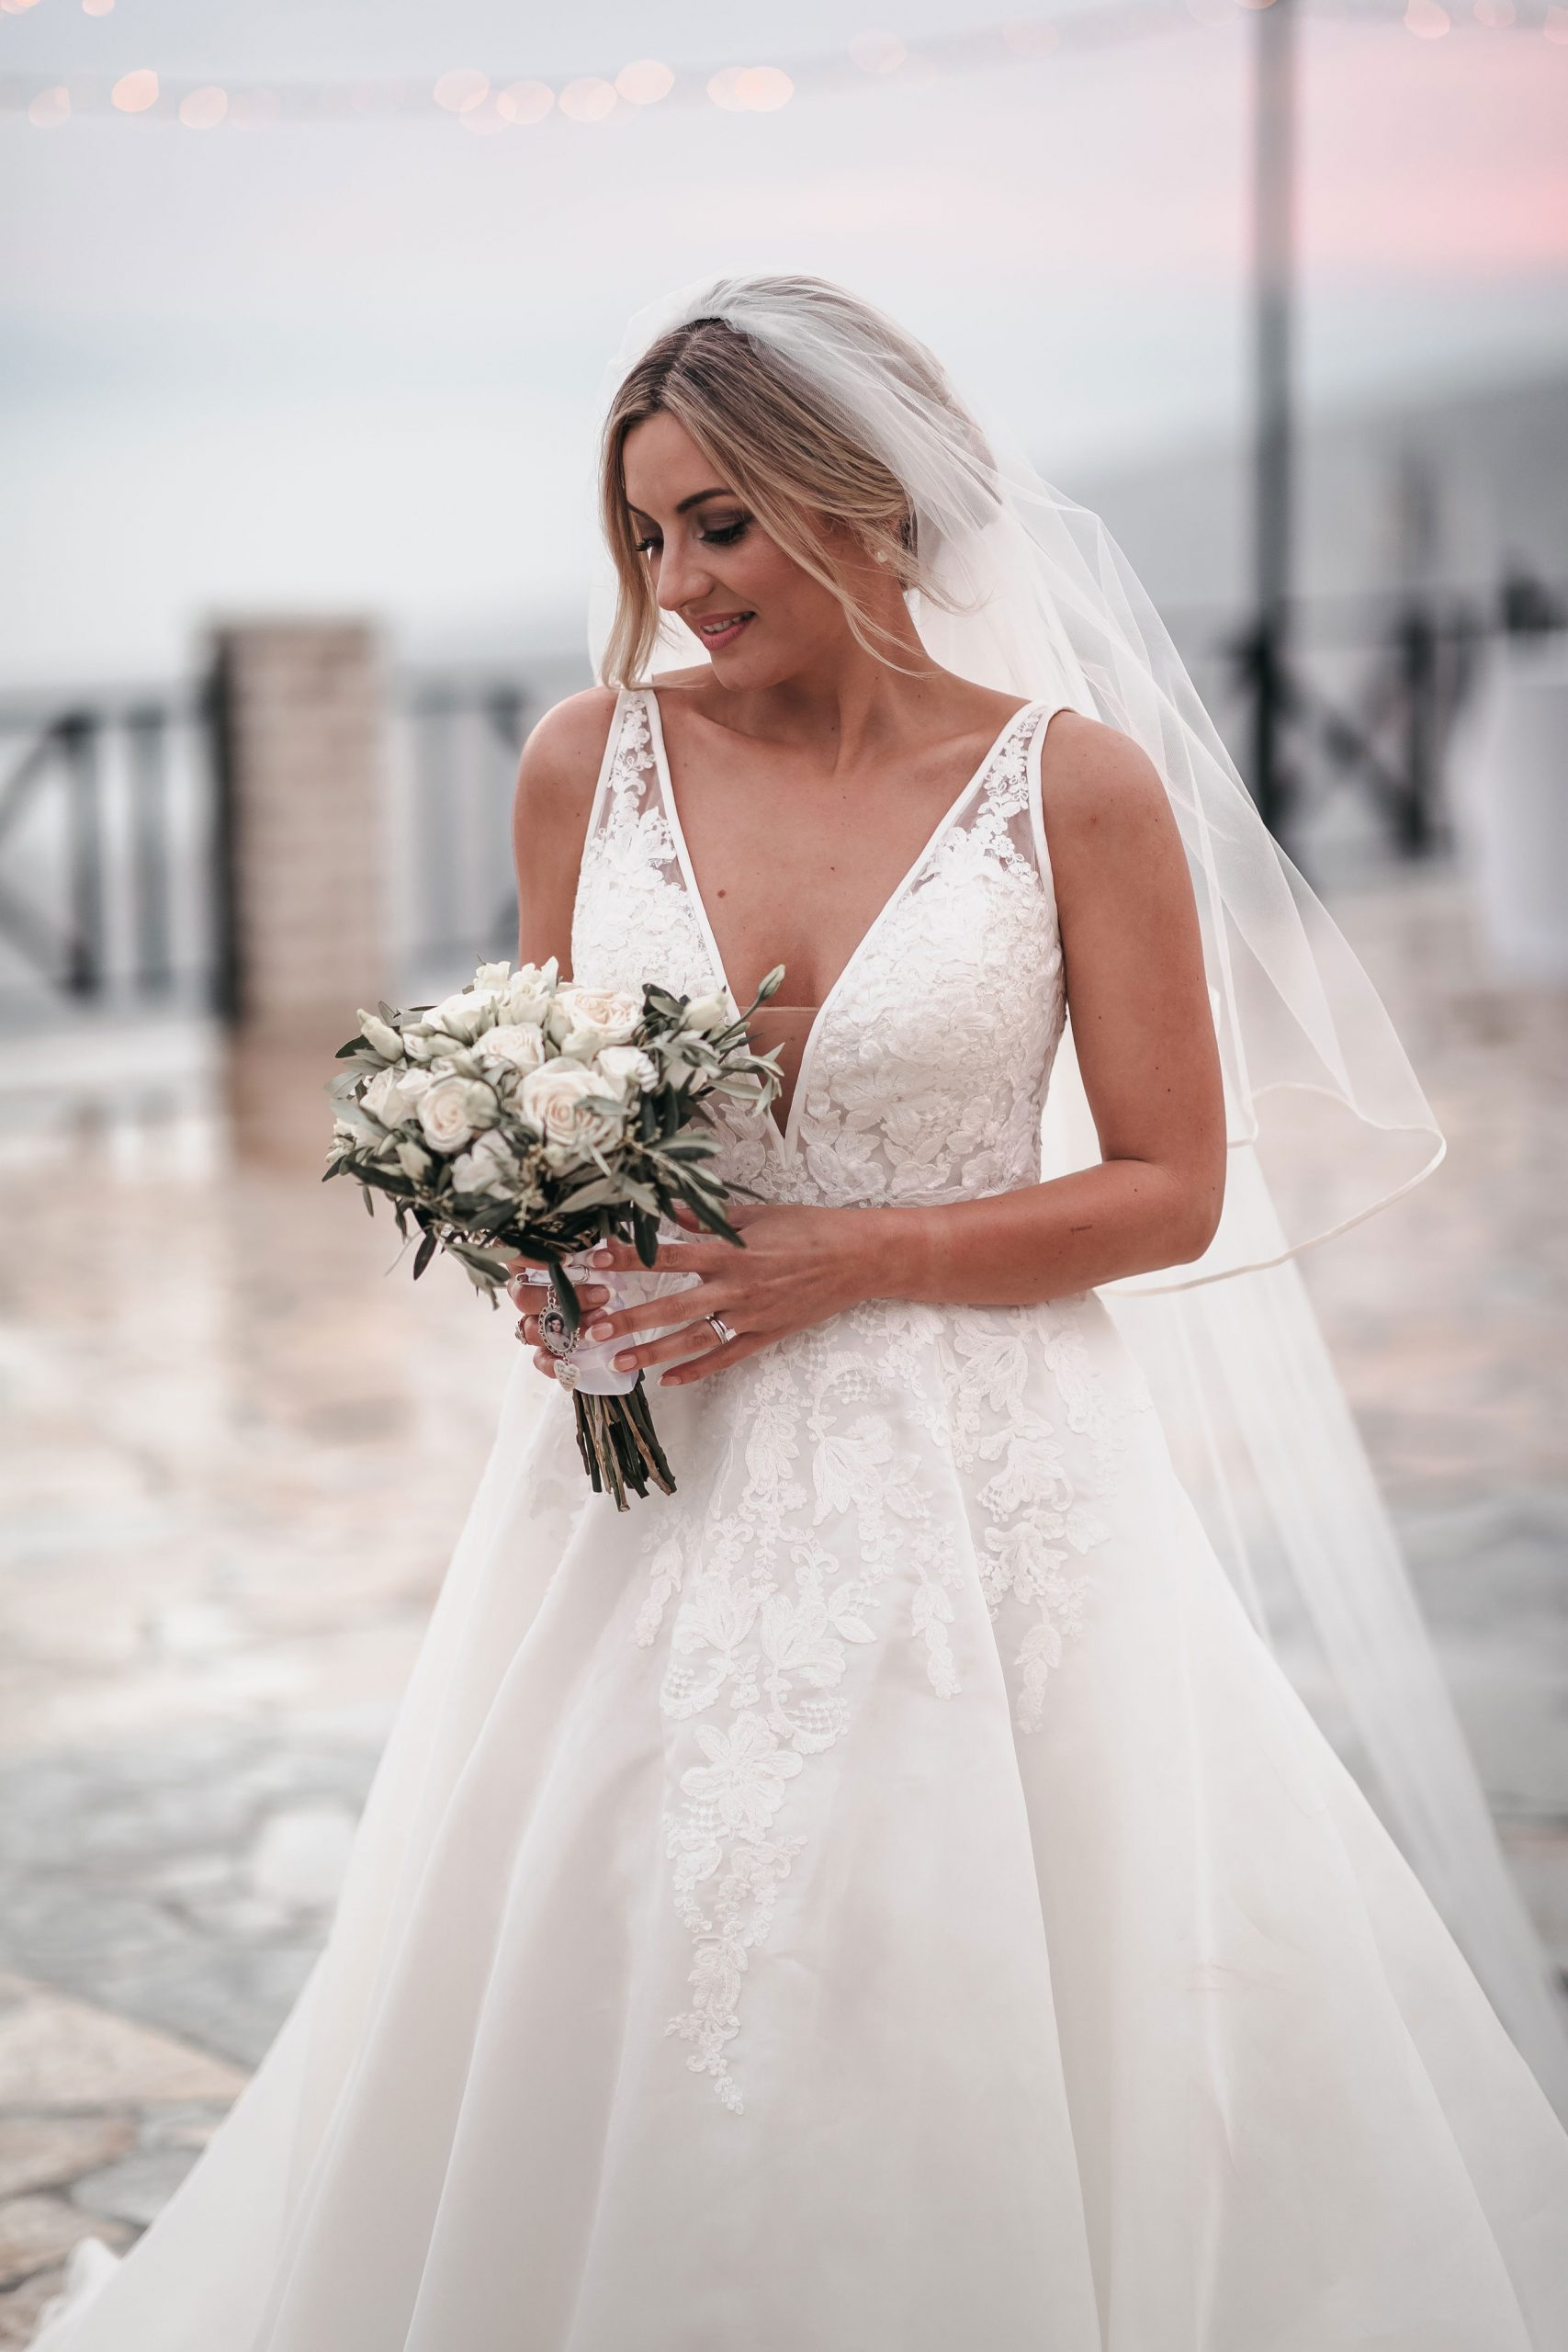 The bride posing with the bouquet of flowers